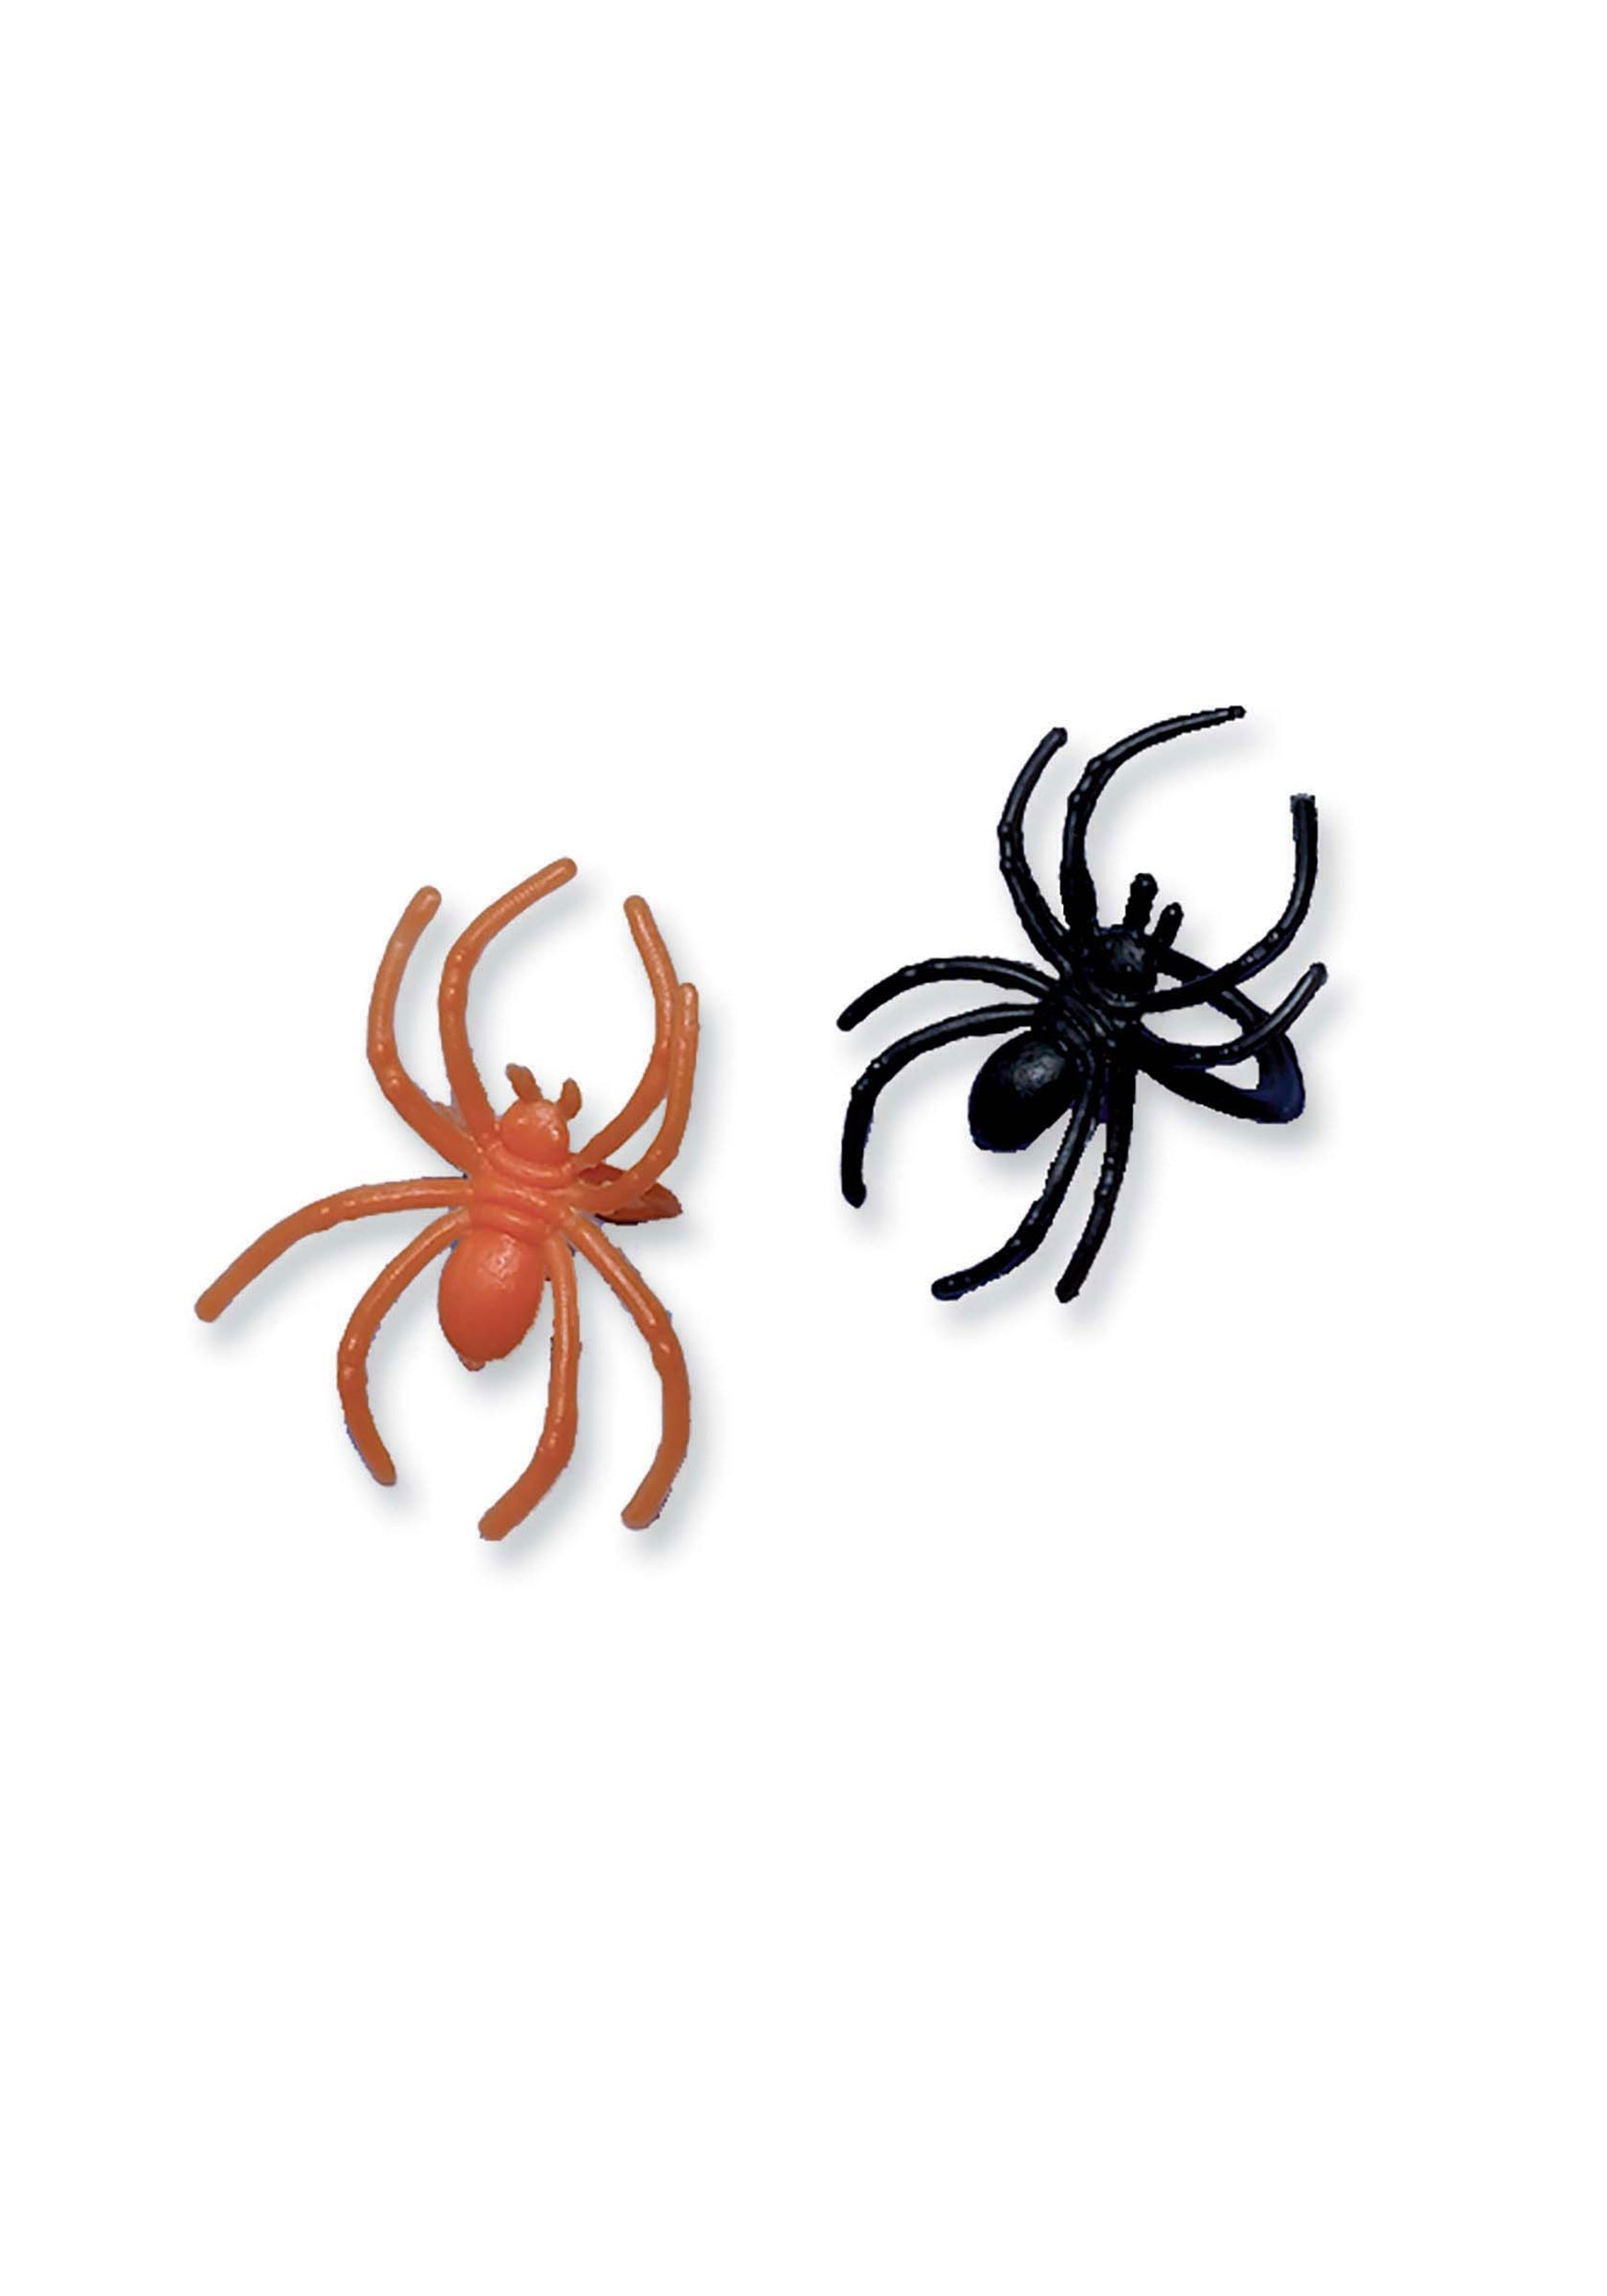 Black_&_Orange_Spider_Rings_(pack_of_30_rings)